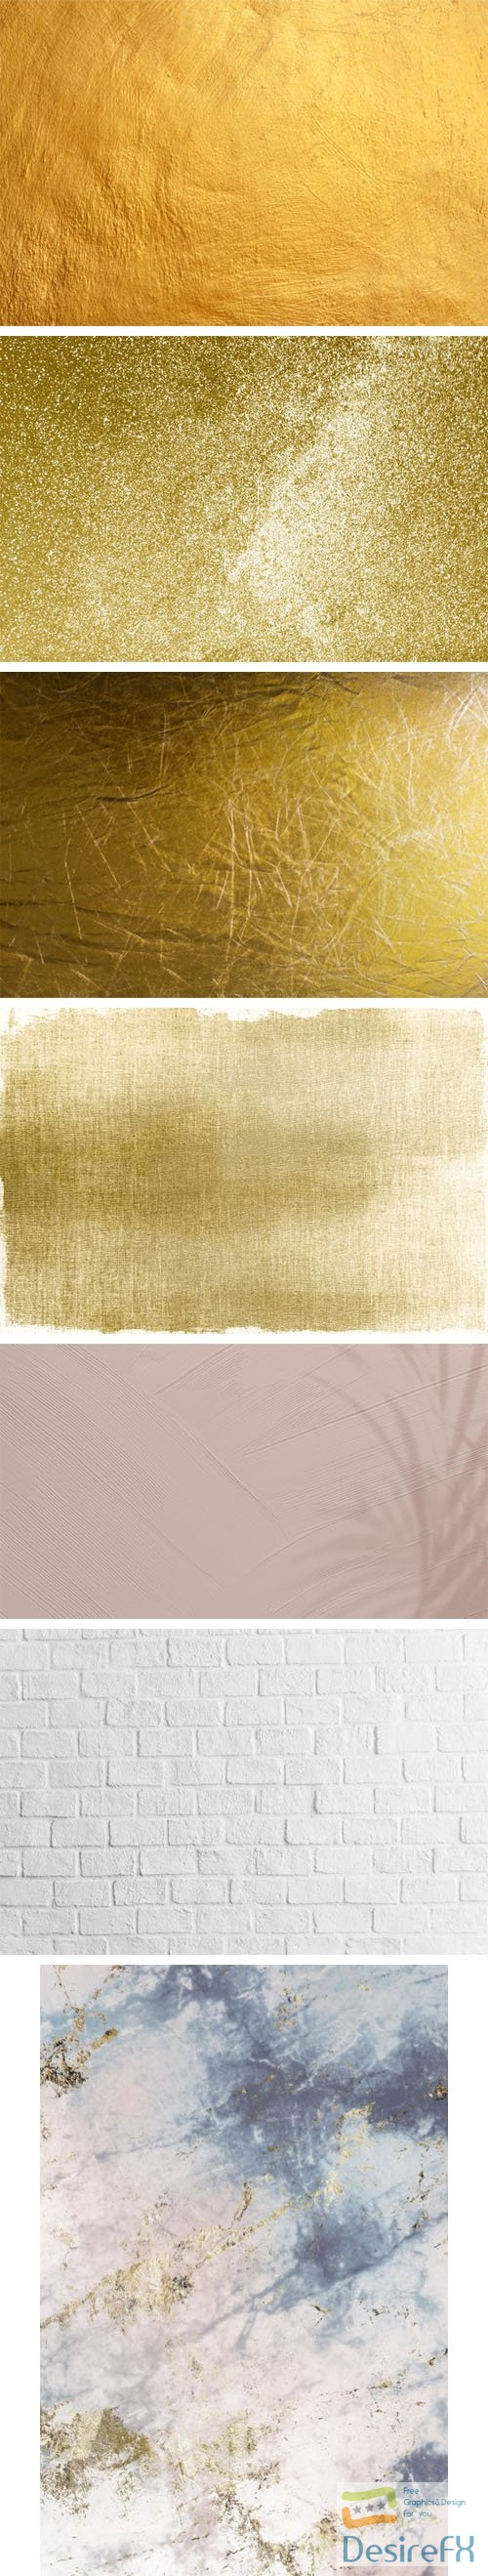 7 Various Textured Backgrounds